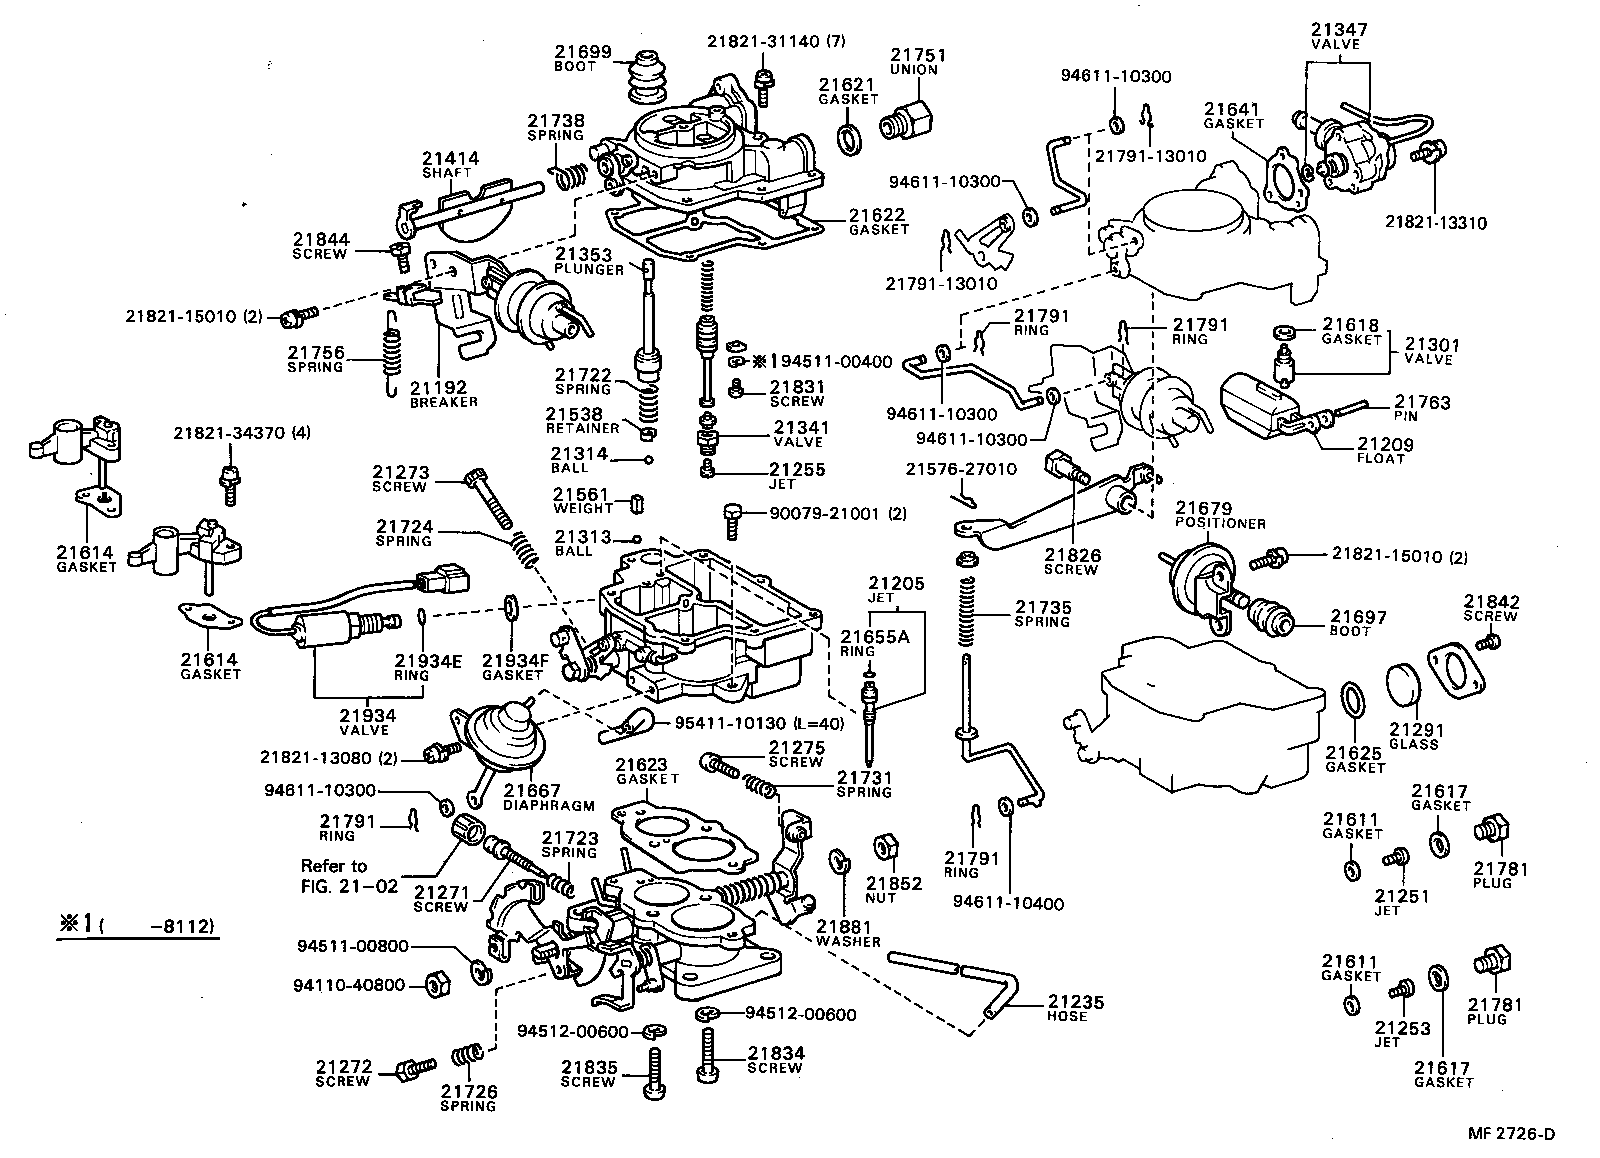 1981 Toyota Corolla Engine Diagram Product Wiring Diagrams \u2022 1981  Toyota Corolla Wiring Diagram